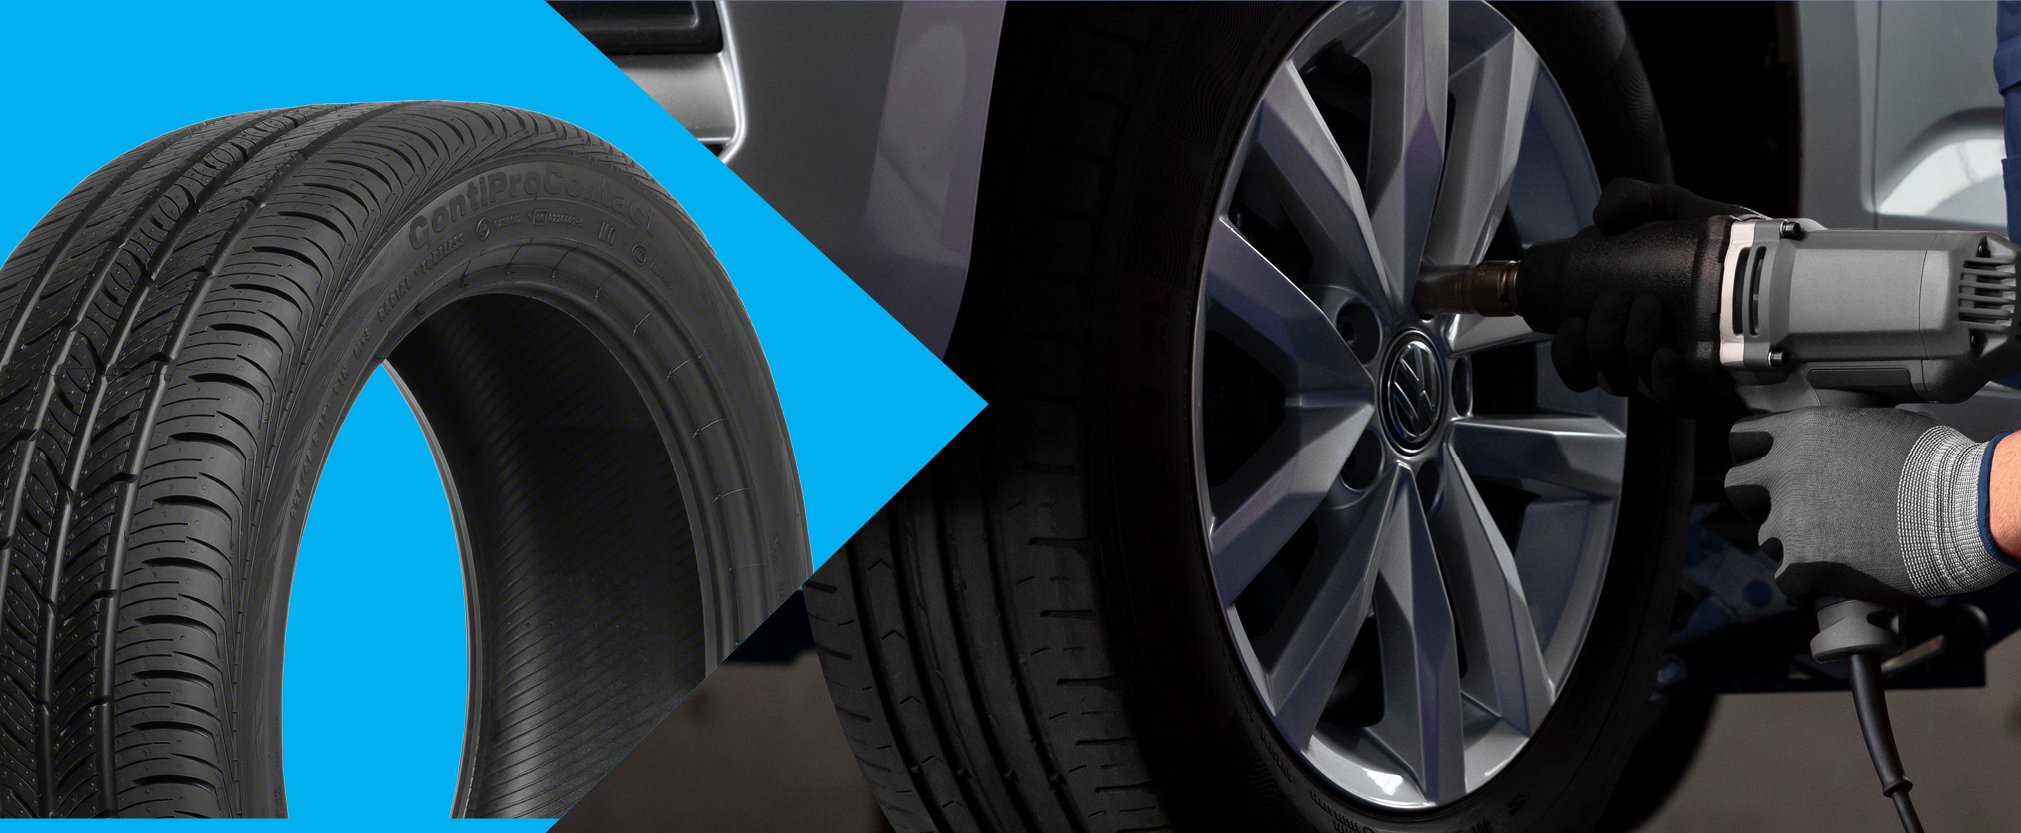 Convenience, Volkswagen Original Tires, and Unmatched Expertise